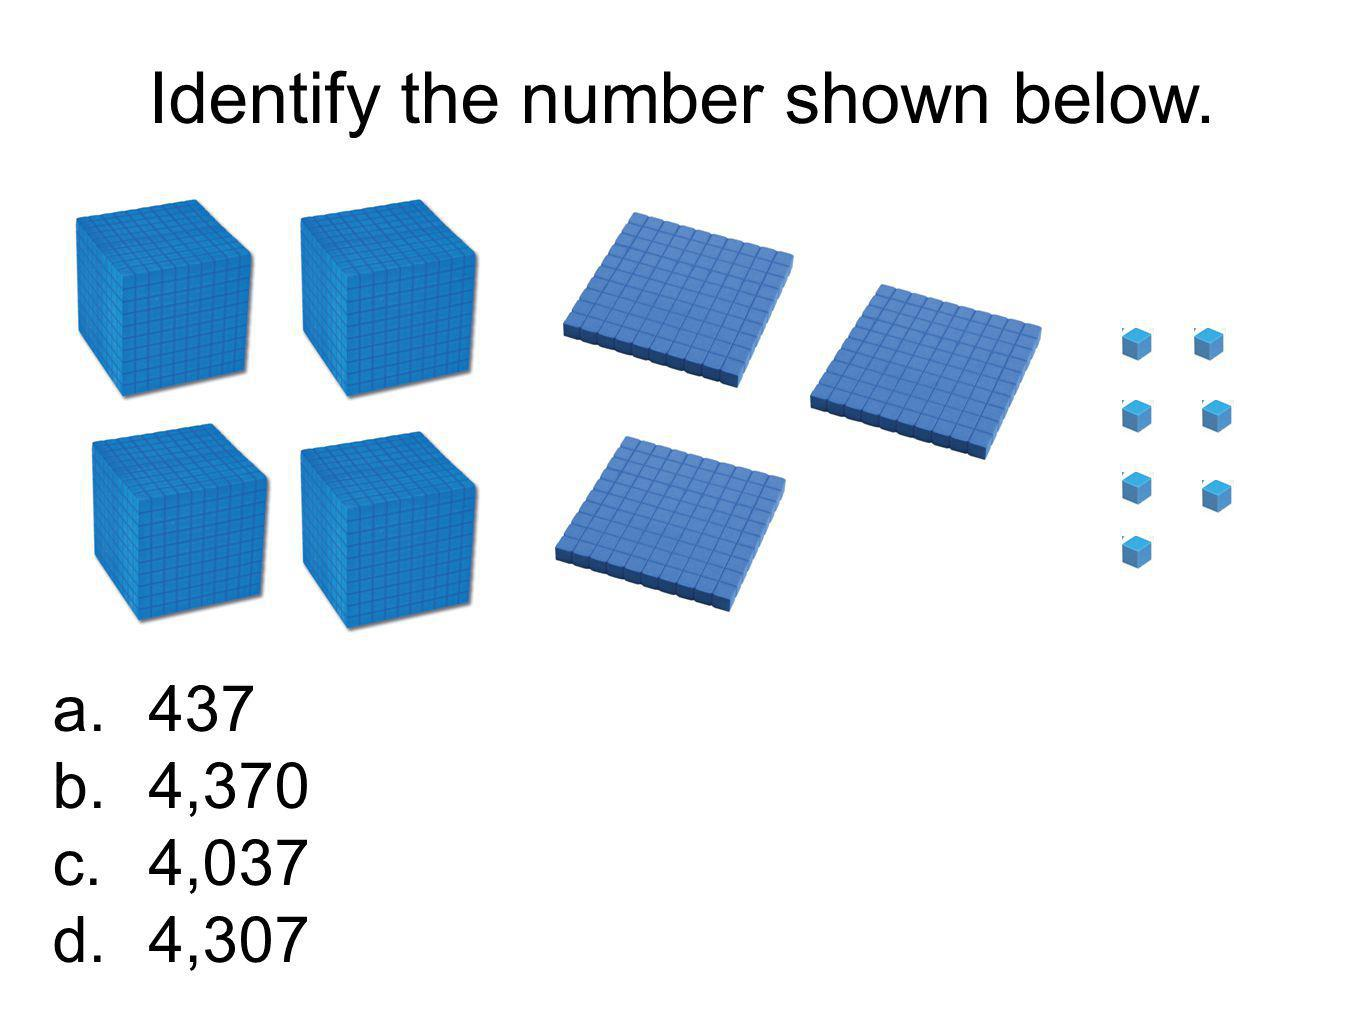 Identify the number shown below. a.437 b.4,370 c.4,037 d.4,307